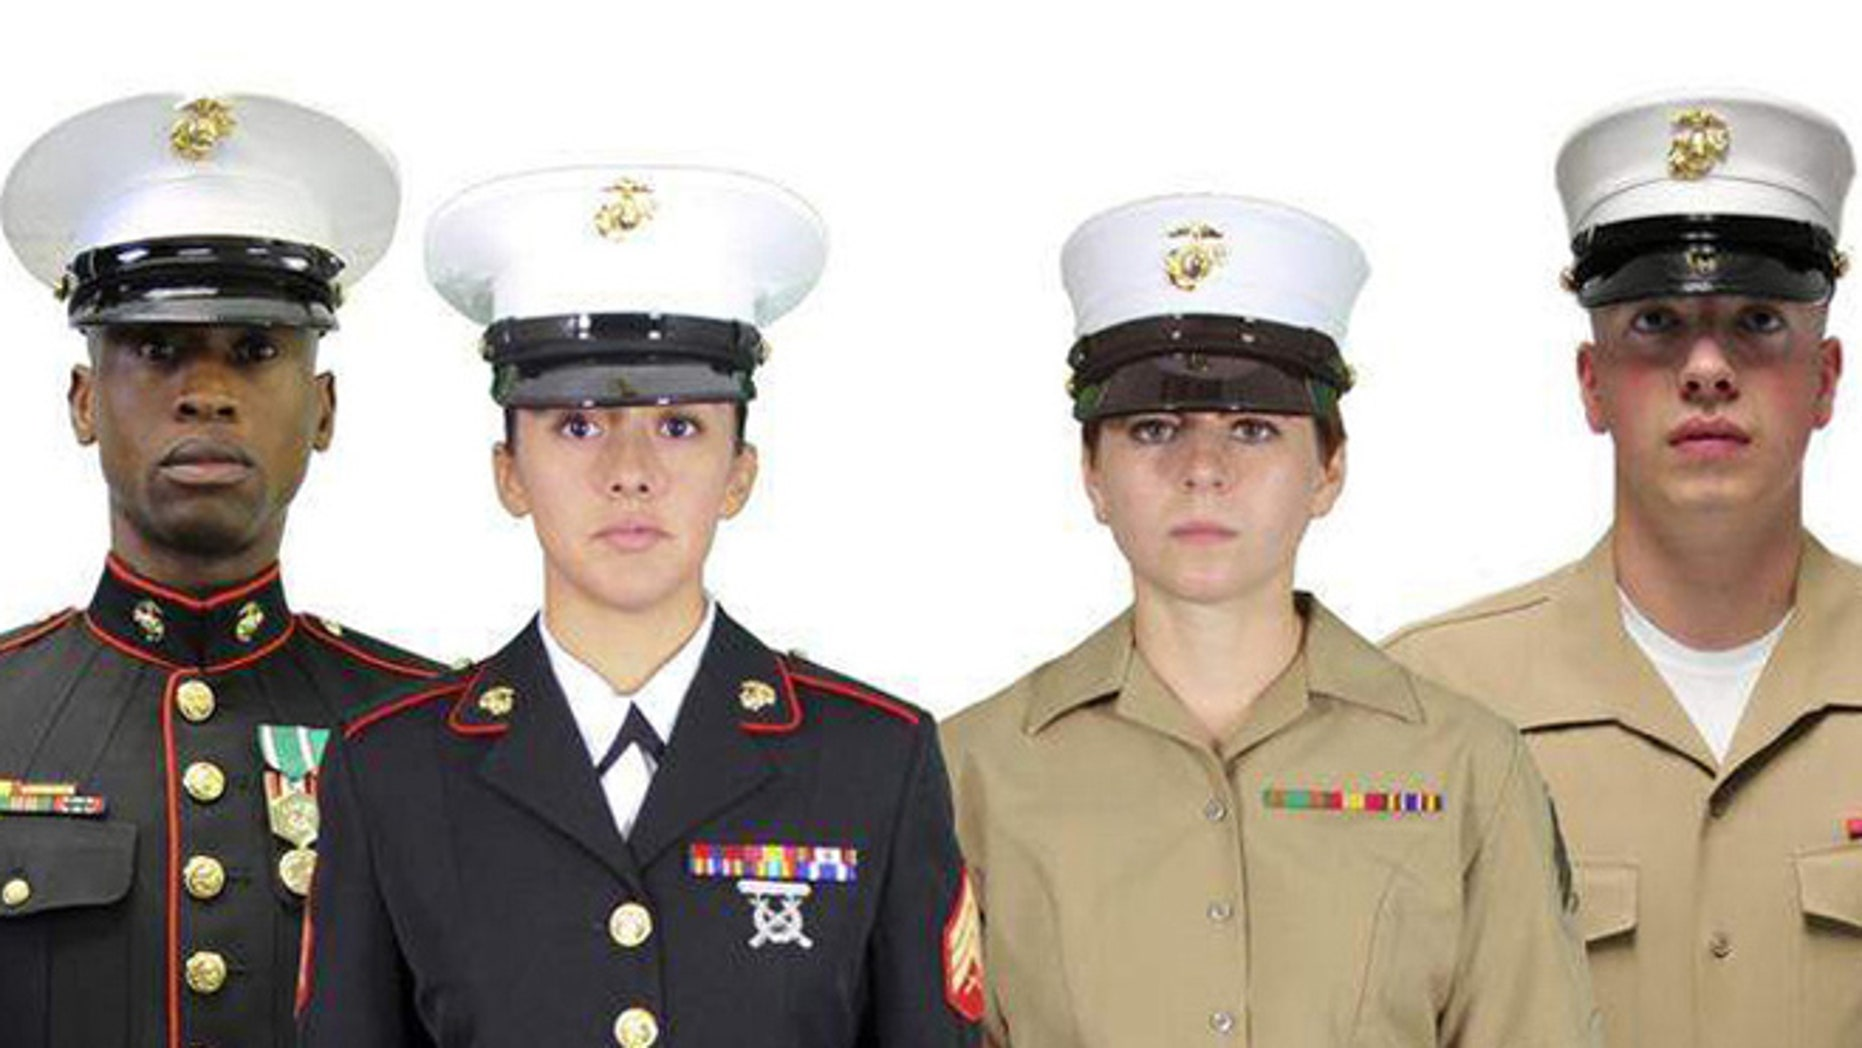 Shown here are the old Marine hats, left, compared to the new ones, right.